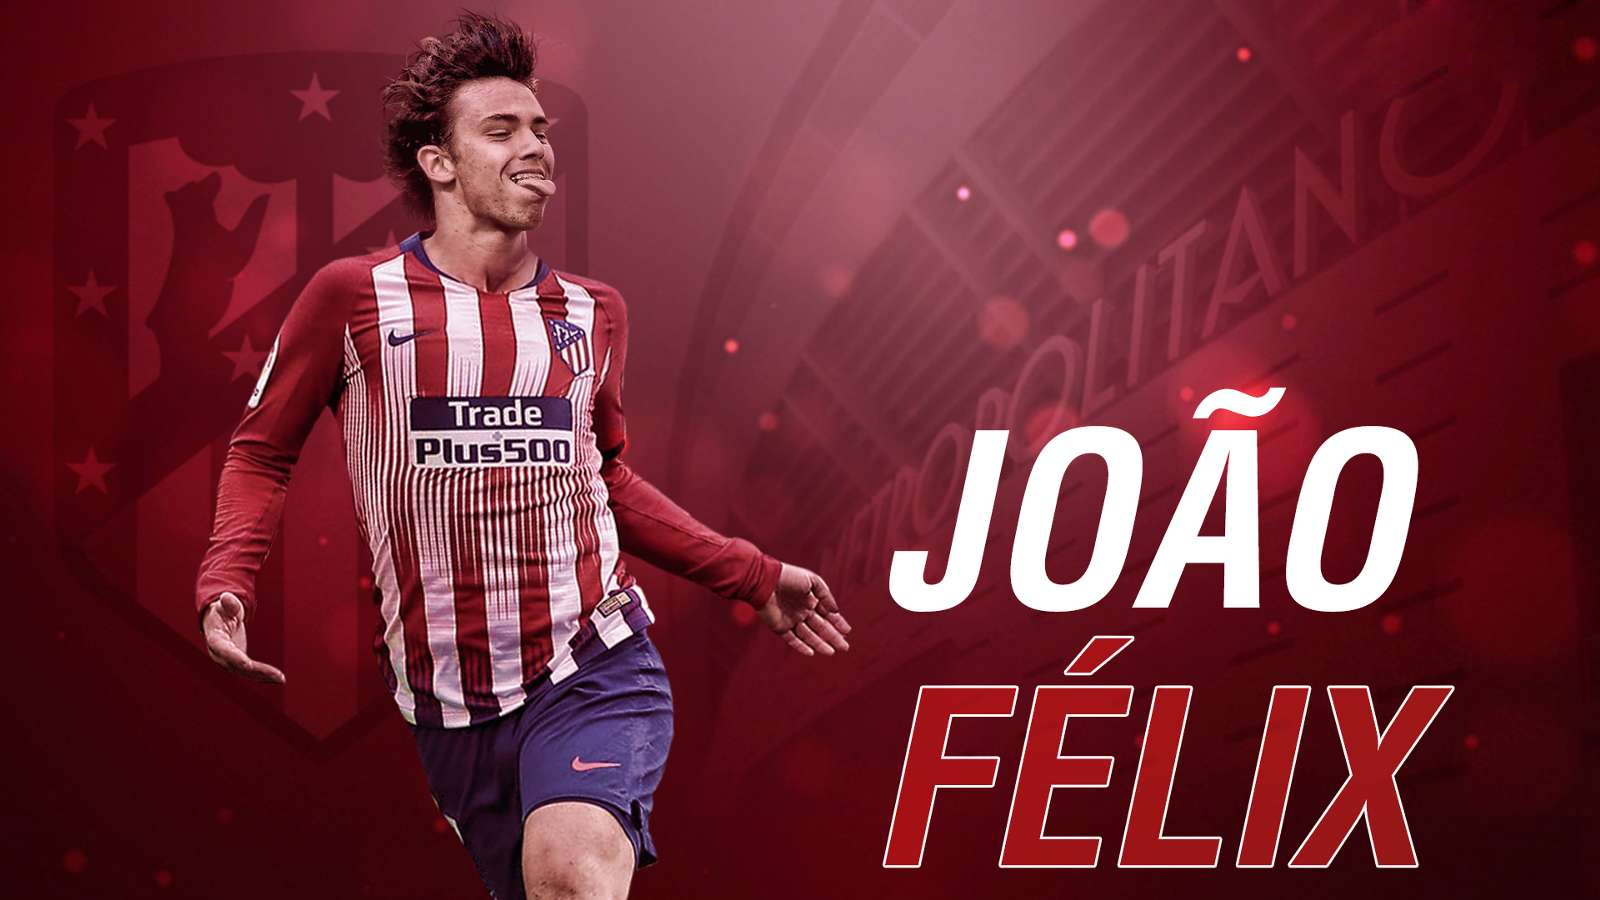 Joao Felix Biography Age Height Personal Life Achievements Net Worth